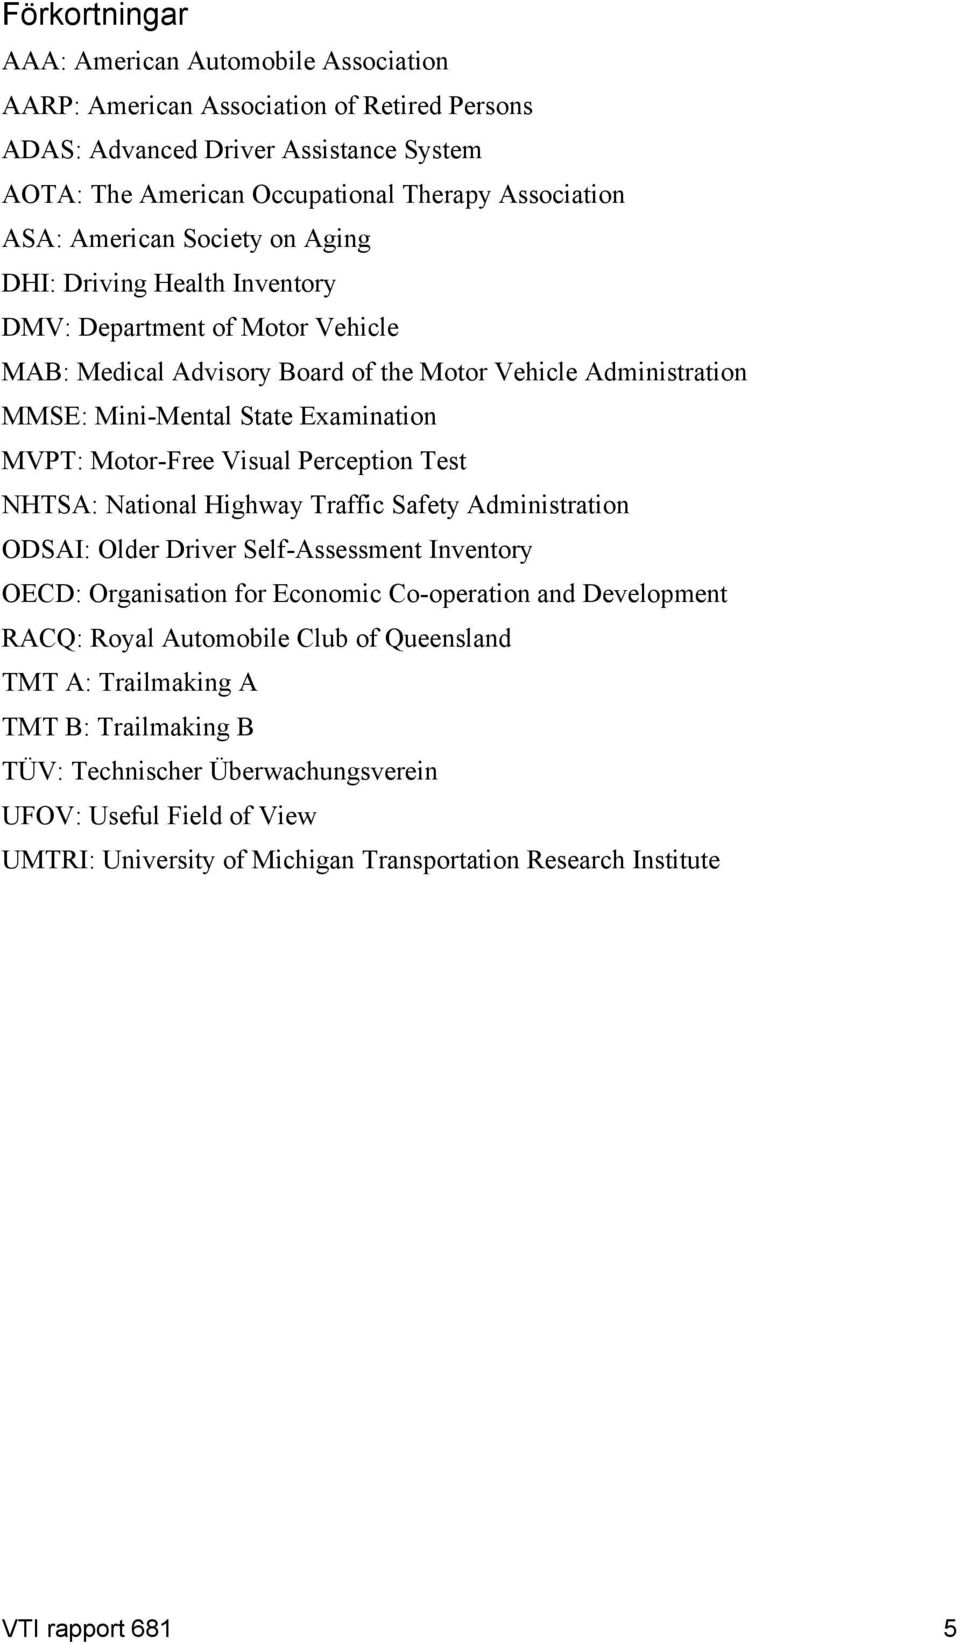 Motor-Free Visual Perception Test NHTSA: National Highway Traffic Safety Administration ODSAI: Older Driver Self-Assessment Inventory OECD: Organisation for Economic Co-operation and Development